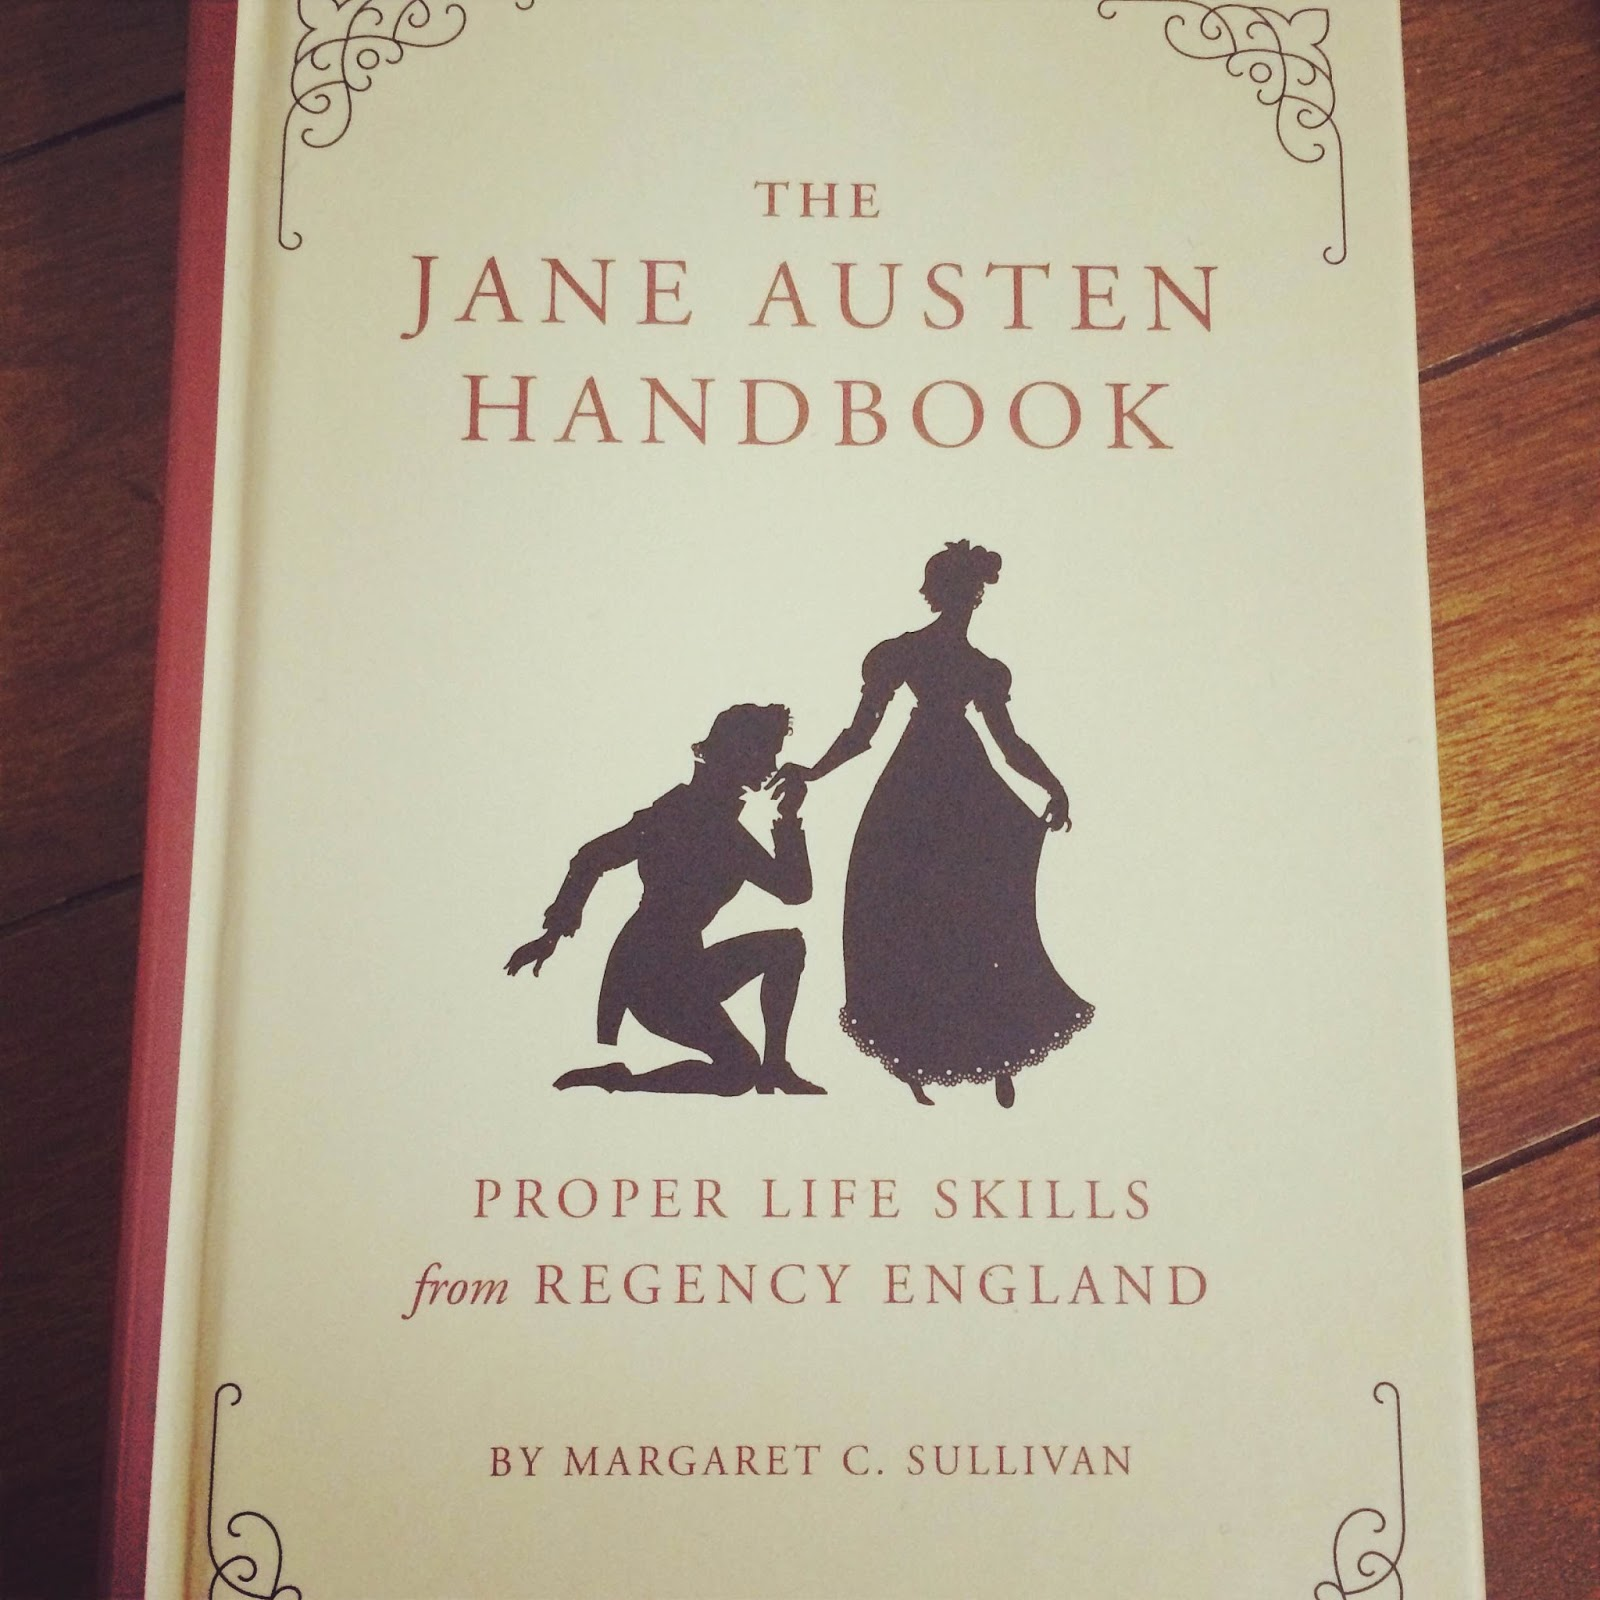 Jane Austen guide to life skills